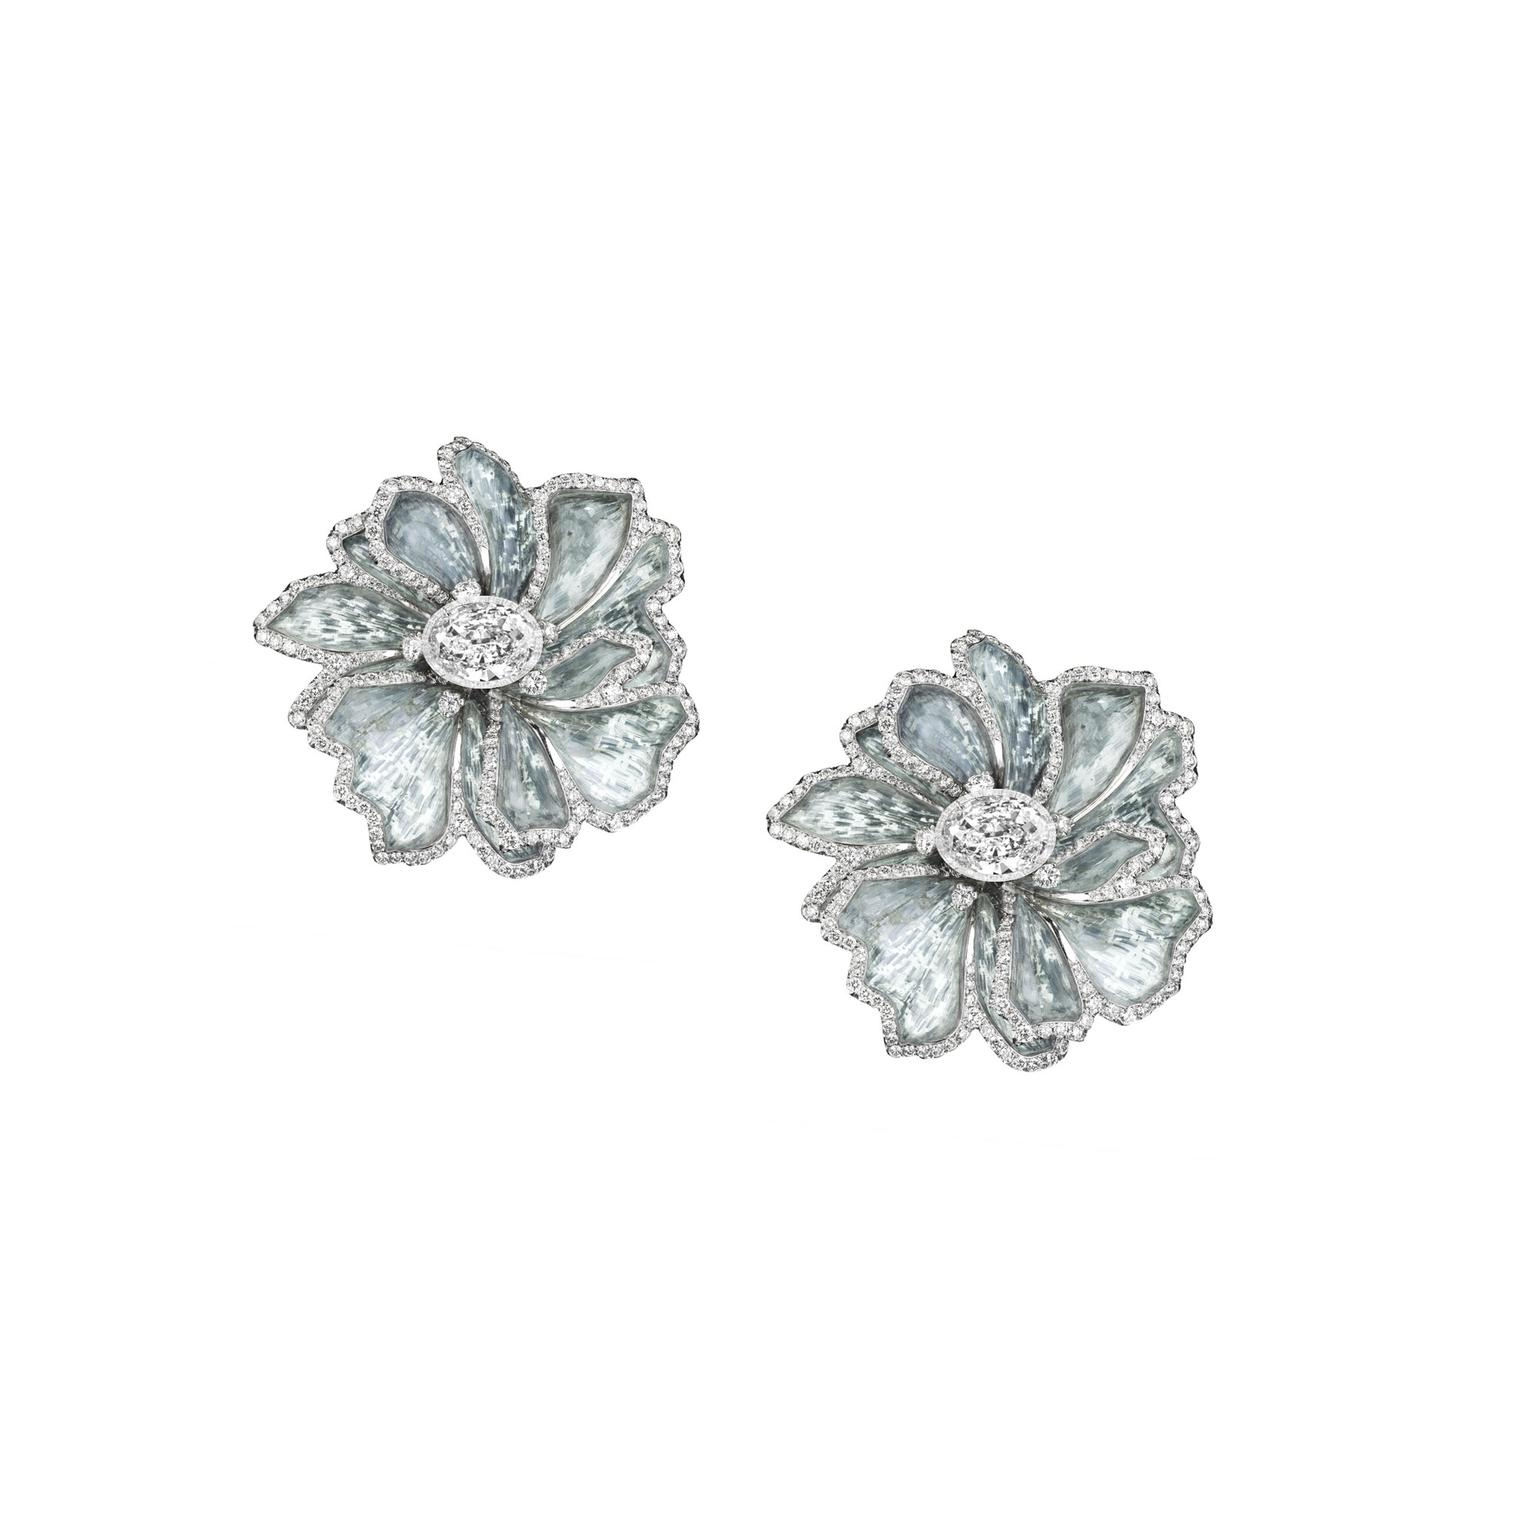 Boghossian titanium white gold and diamond earrings